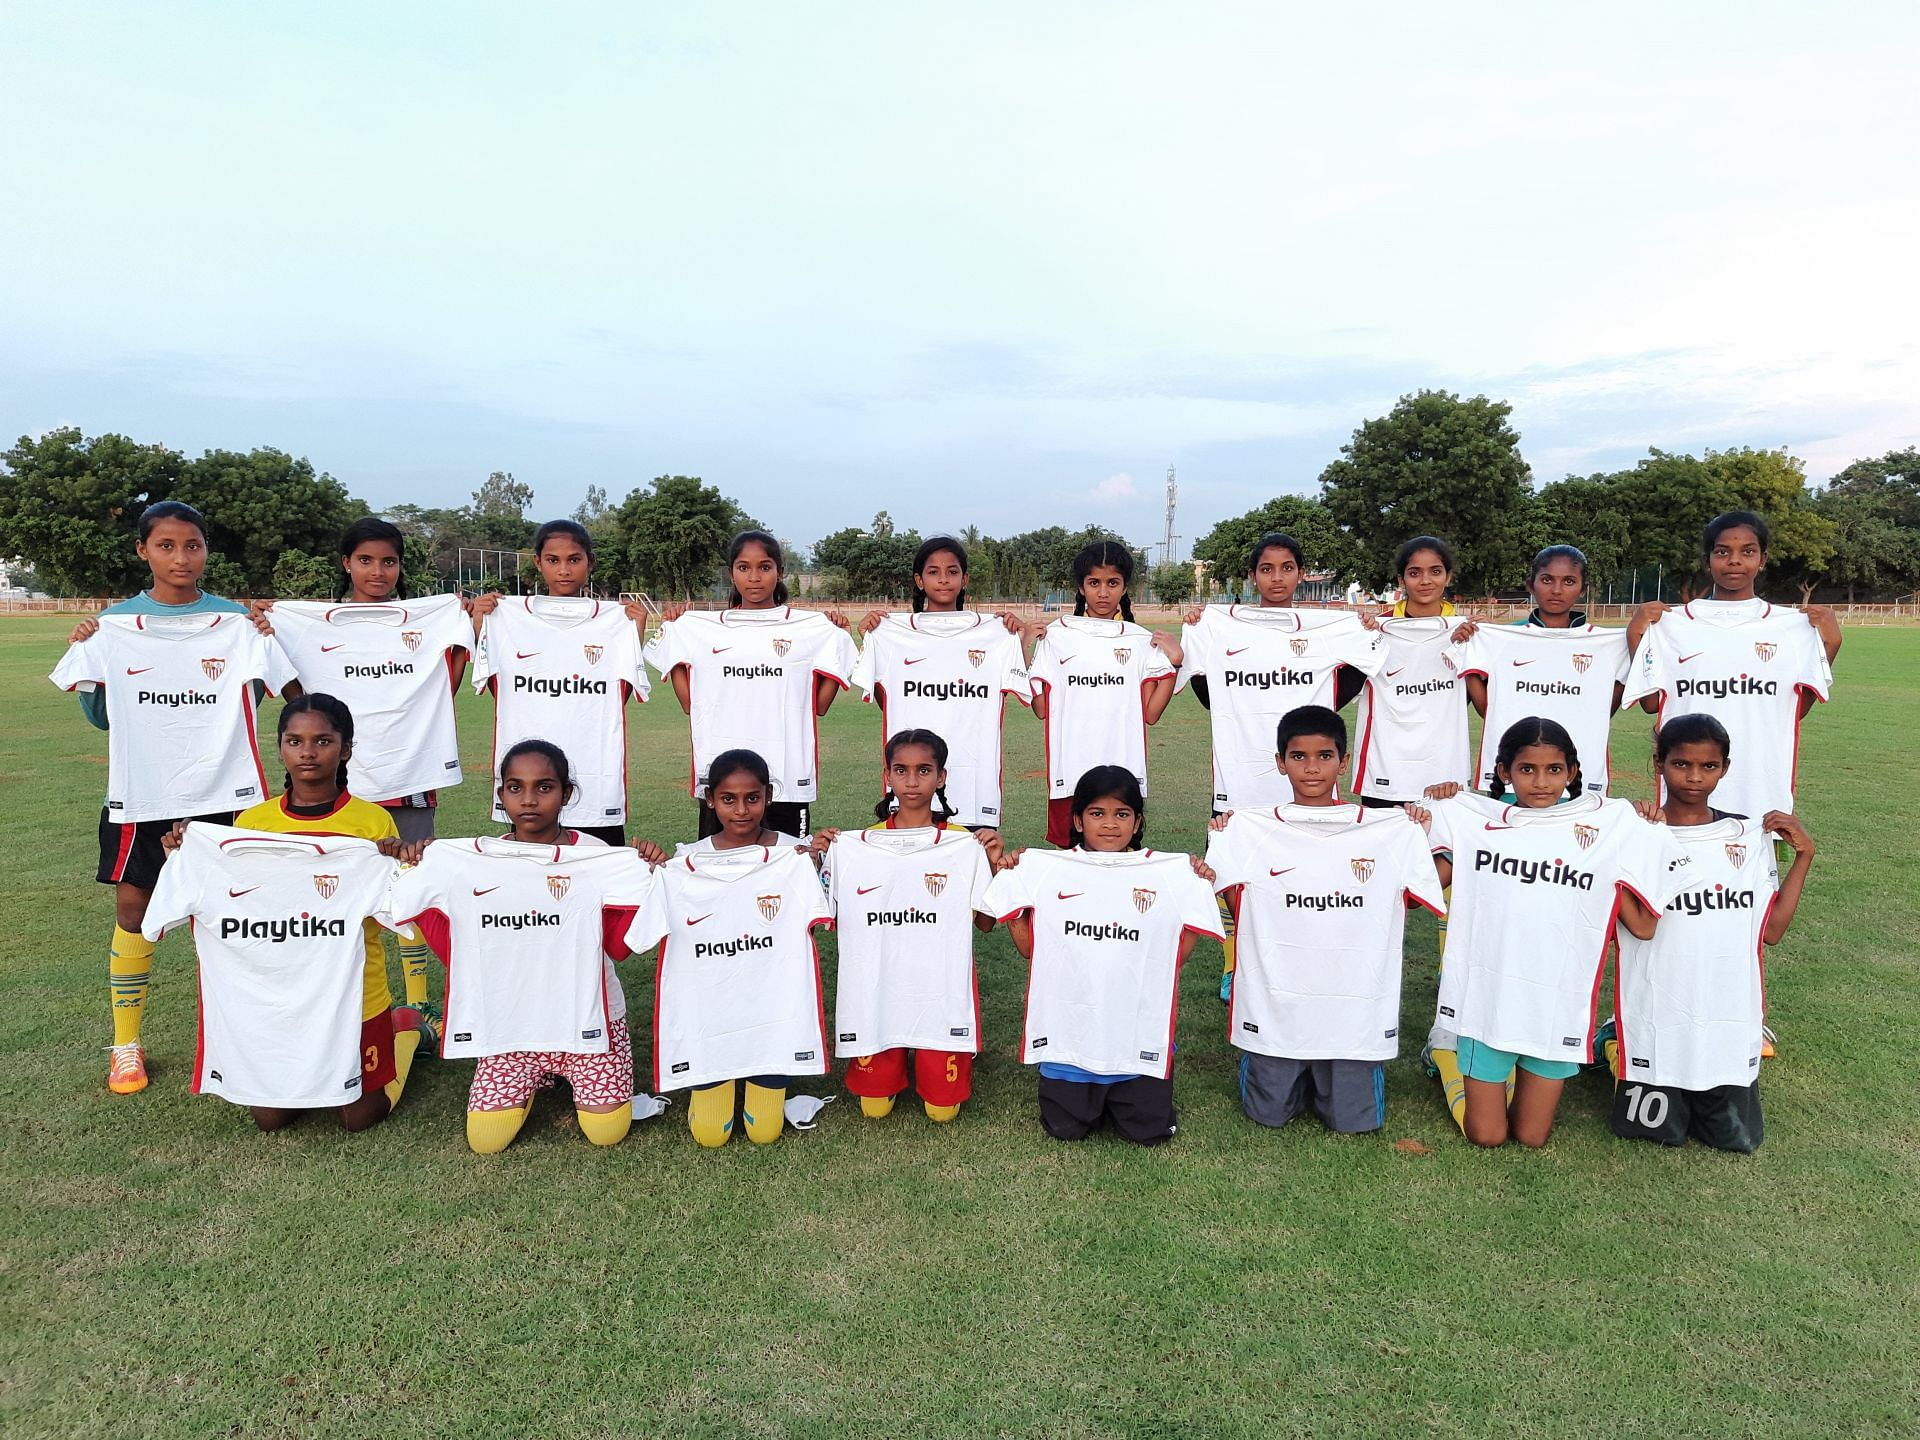 Official Sevilla FC jerseys in the Anantapur Rural Football League.